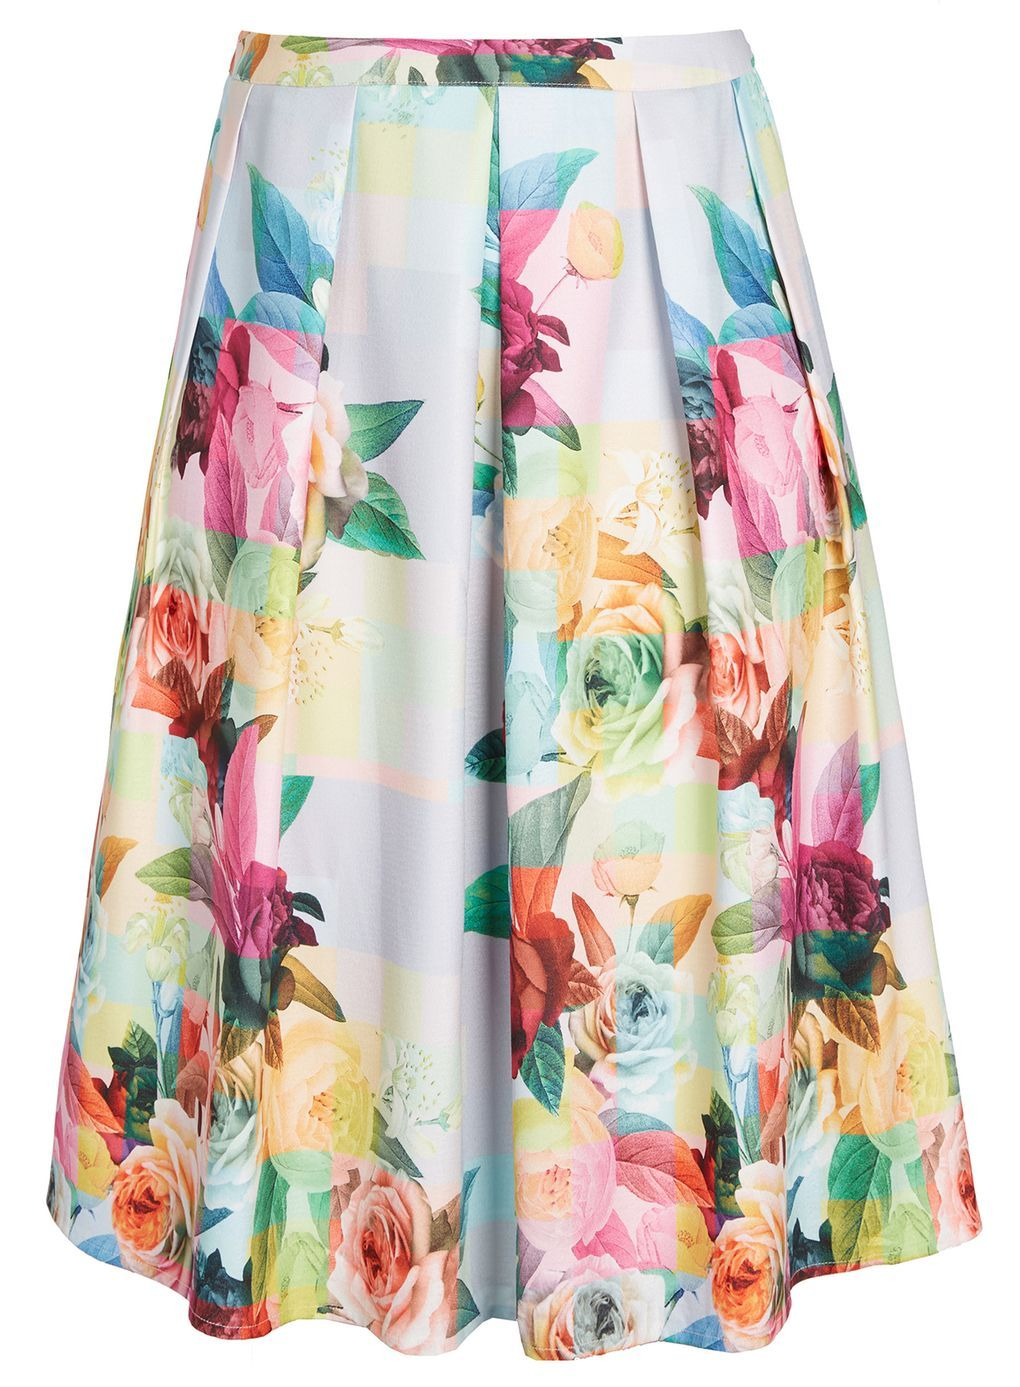 f9df87b1ee City Chic Ivory Floral Print Skirt | Style Me Up | Fashion, Floral ...